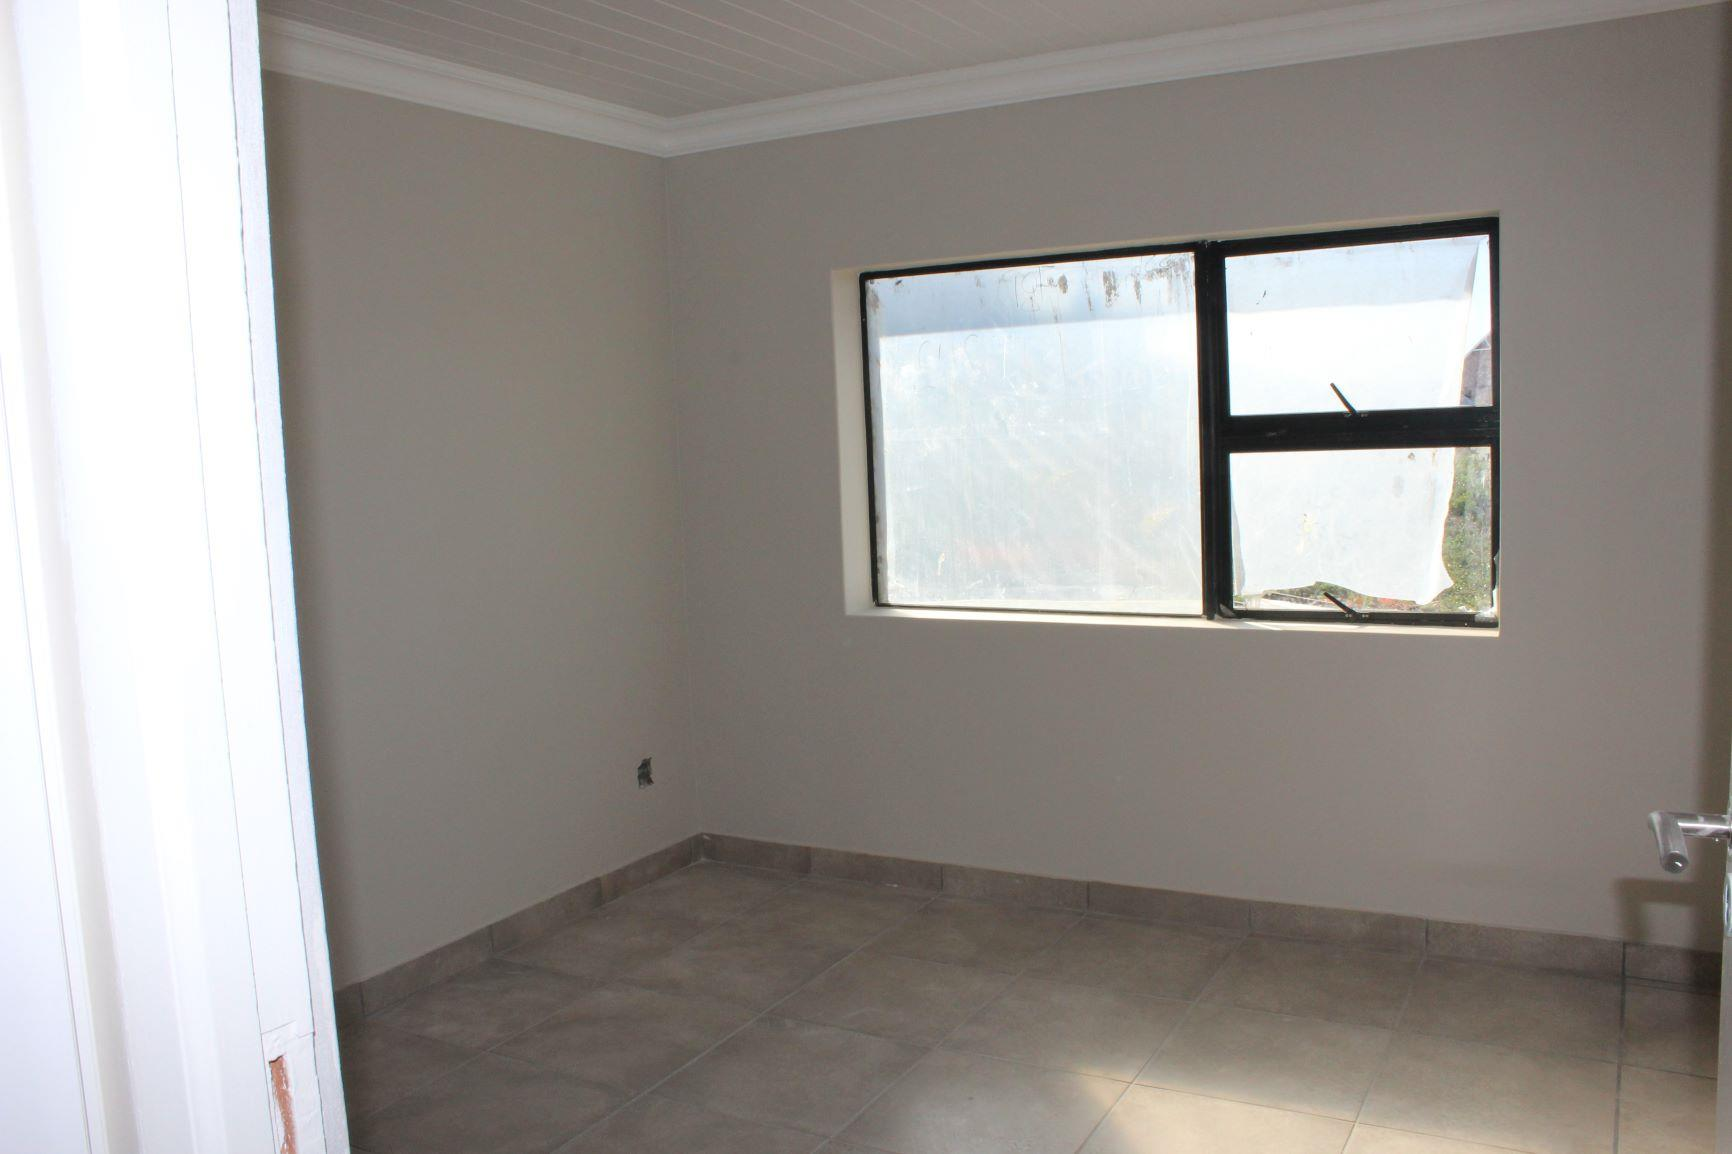 4 Bedroom House For Sale in Stilbaai Wes